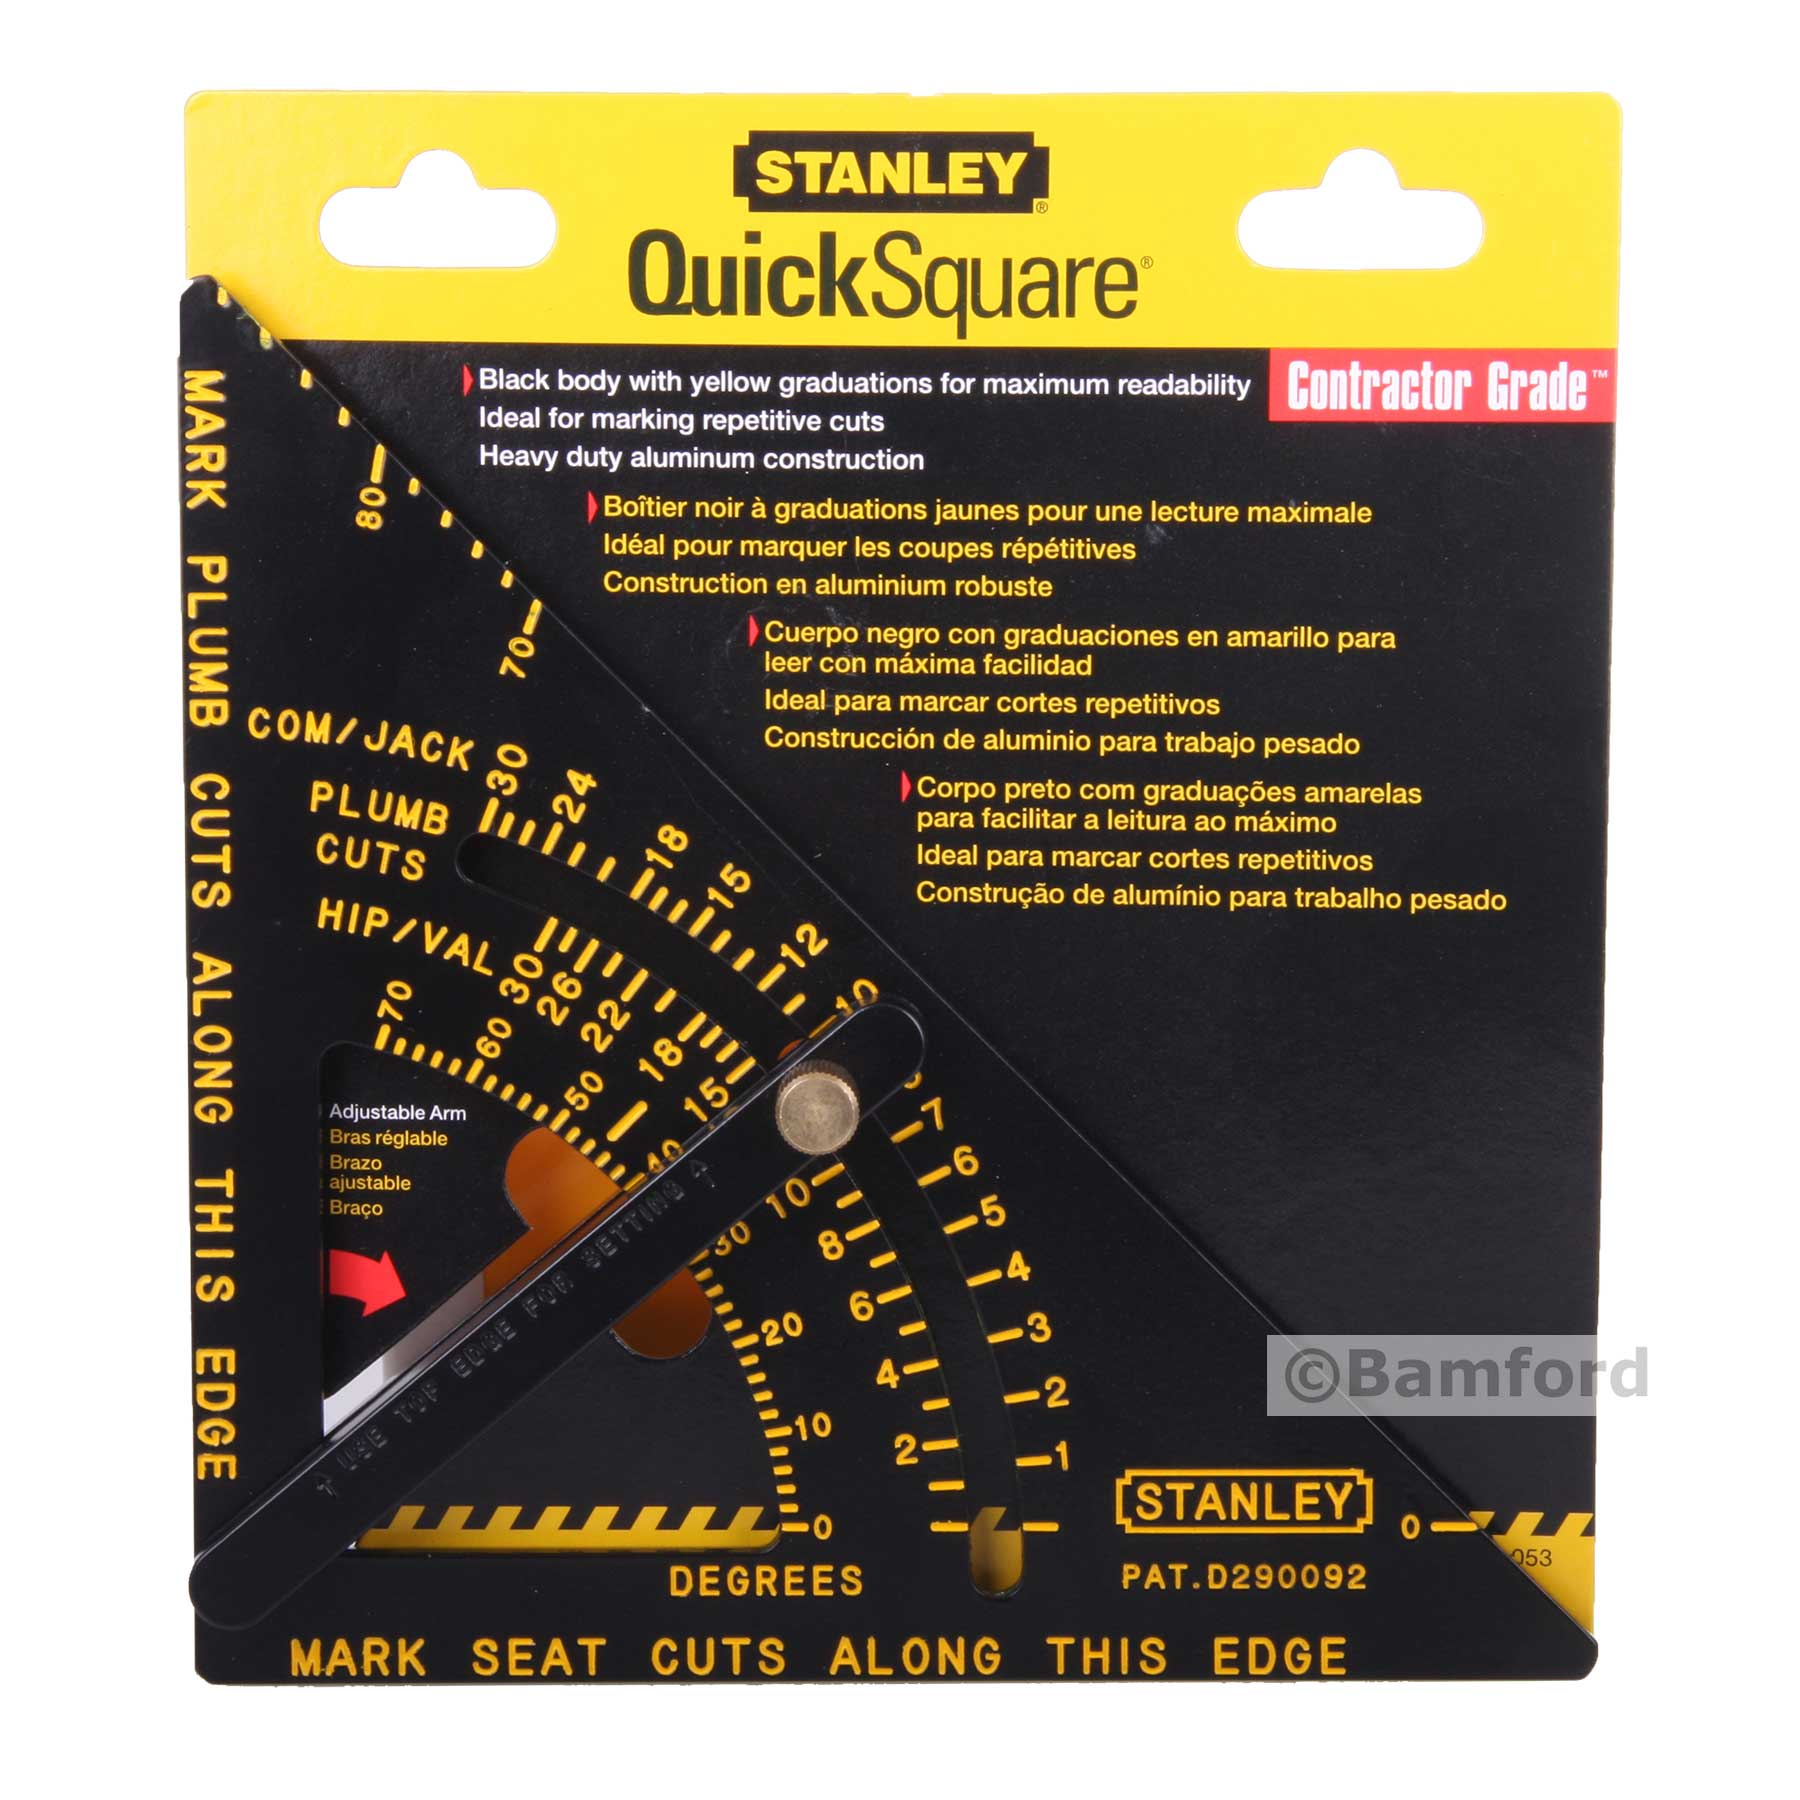 Stanley Adjustable Quick Roofing Square Rafter Saw Guide